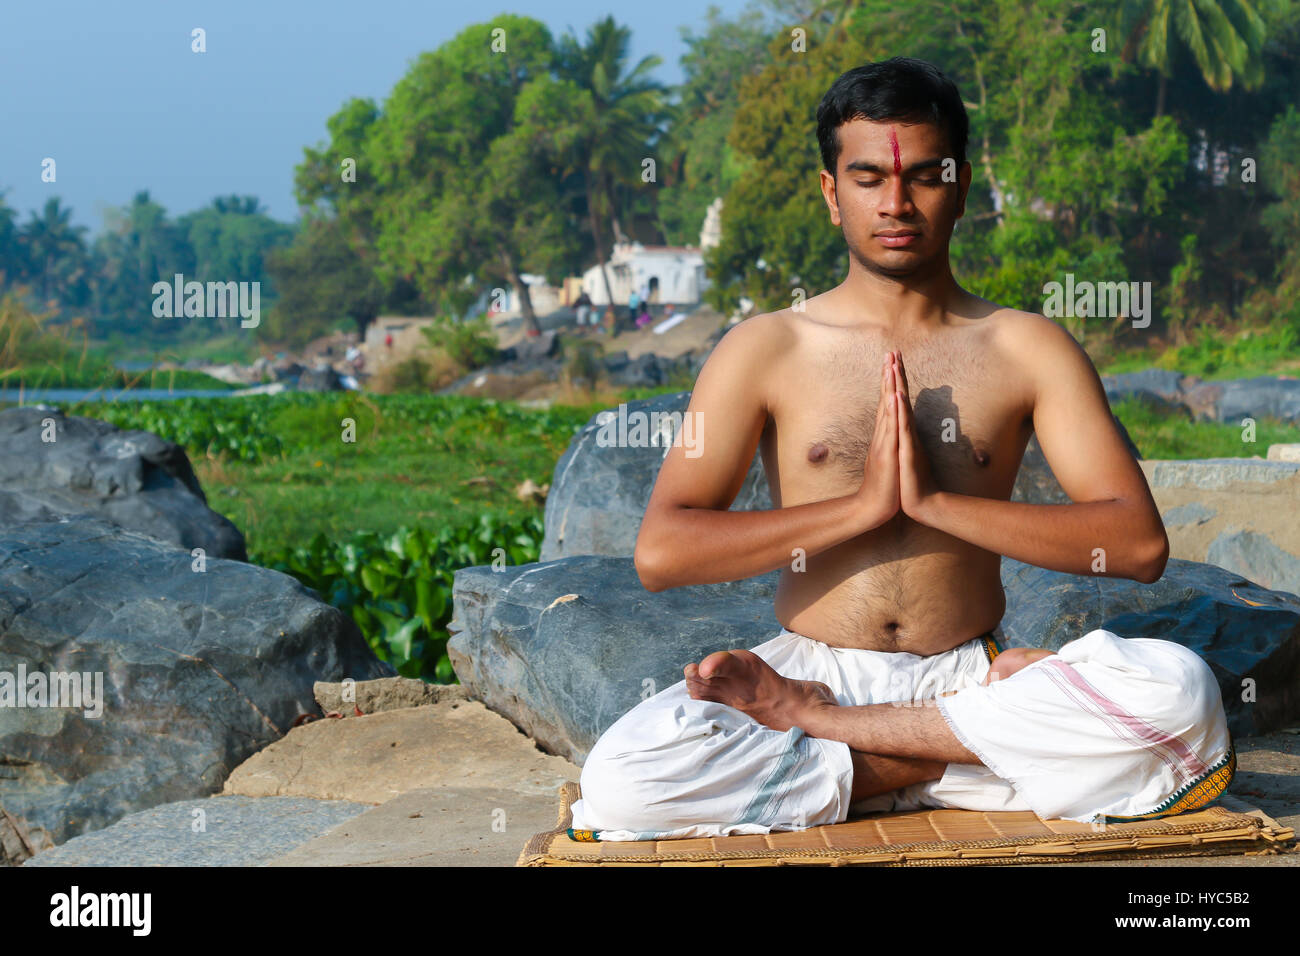 Indian Man Practicing Yoga Meditation Next To A River In South Stock Photo Alamy